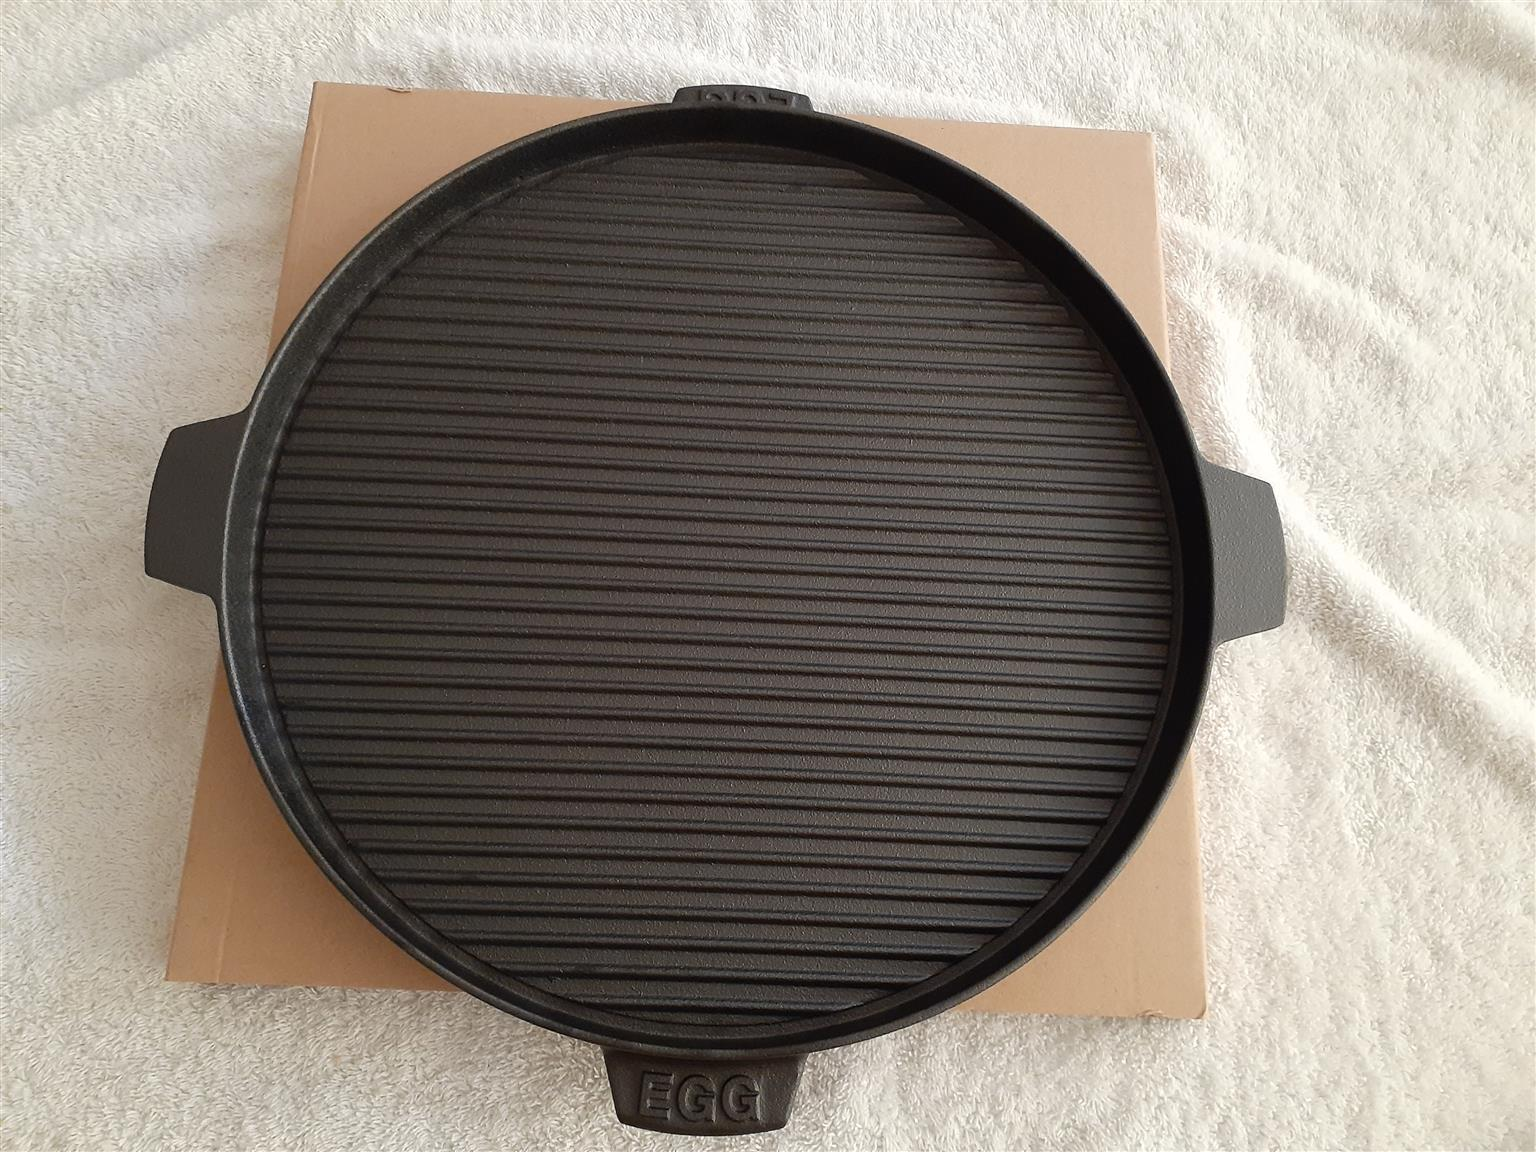 Plancha, griddle or skillet 38 cm cast iron pan for searing, baking eggs, Roast or making breakfast.  For Sale.